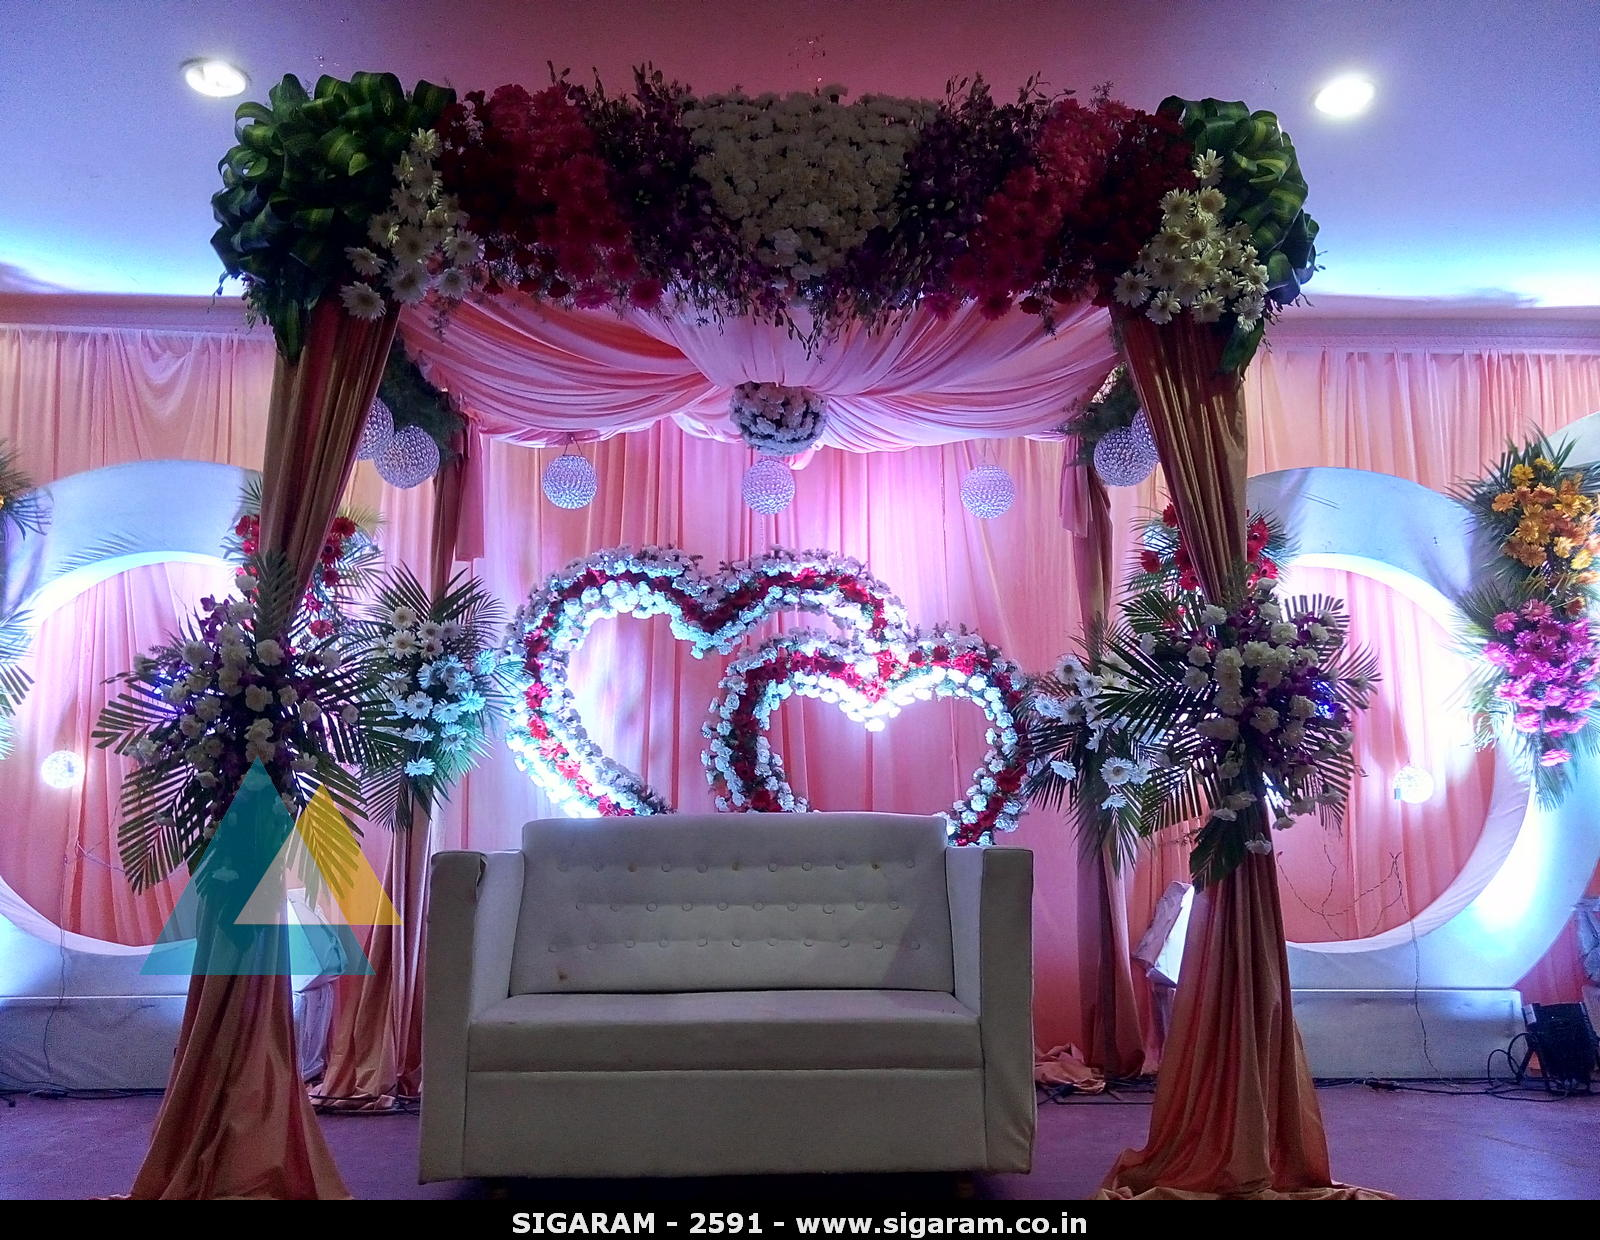 Http Sigaram Co In Decorations Wedding Wedding Reception Decoration At Subalakshmi Thirumana Mahal Cuddalore